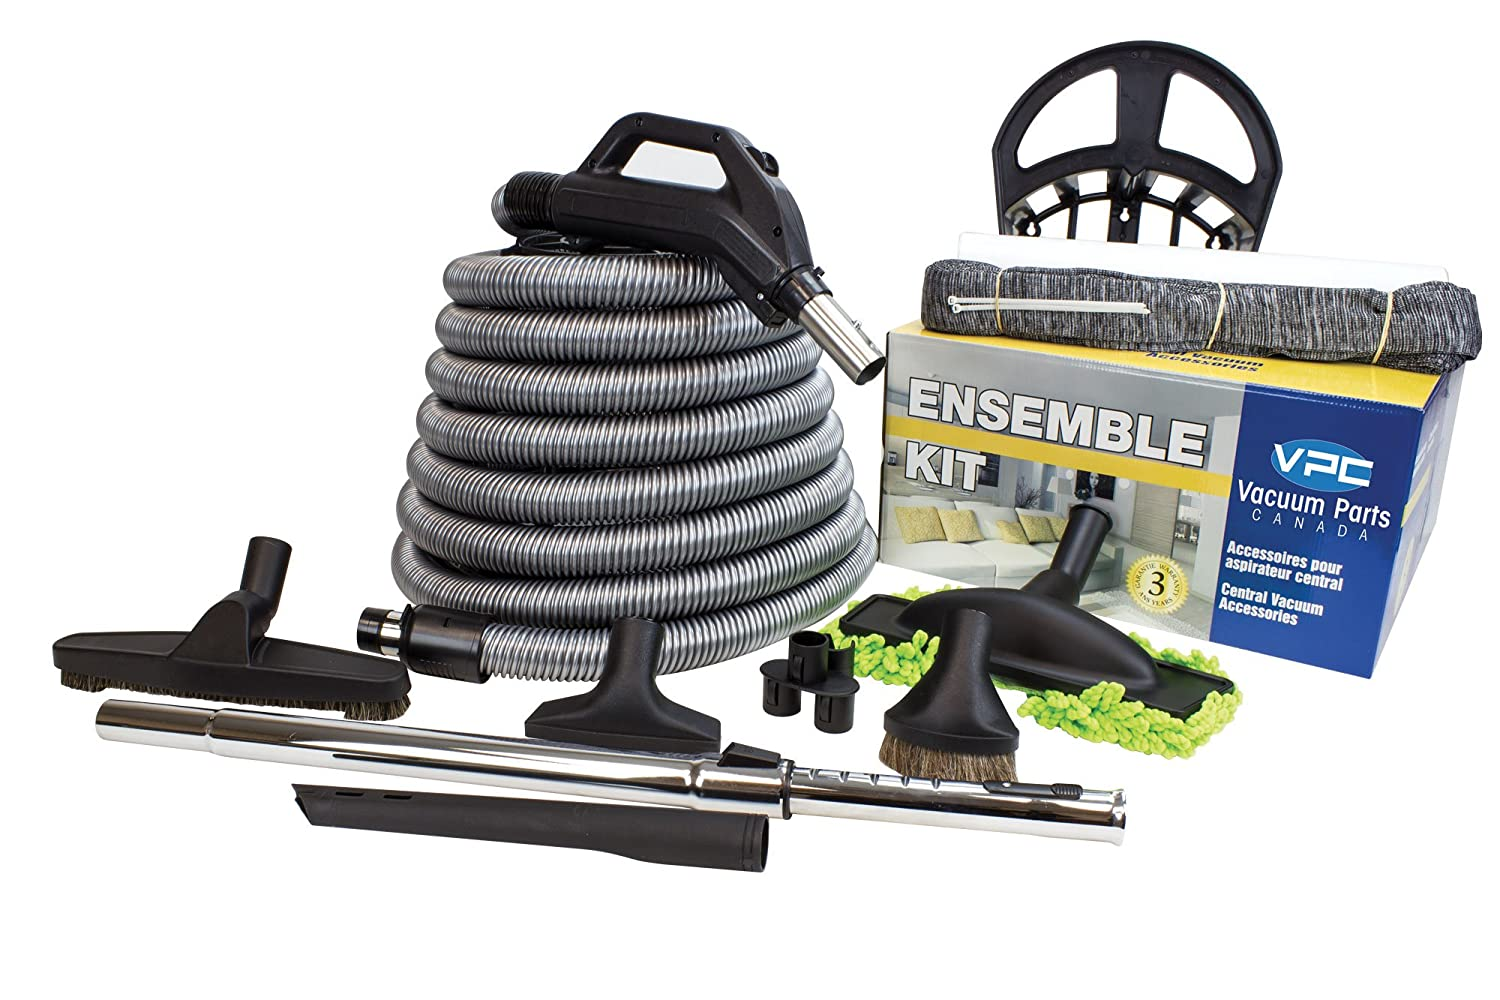 Central Vacuum Accessory Kit - Silver Hose - Telescopic Wand With Deluxe Tool Set - Handle with On/Off Button (30 feet) WITH BONUS Tools Vacuum Parts Canada